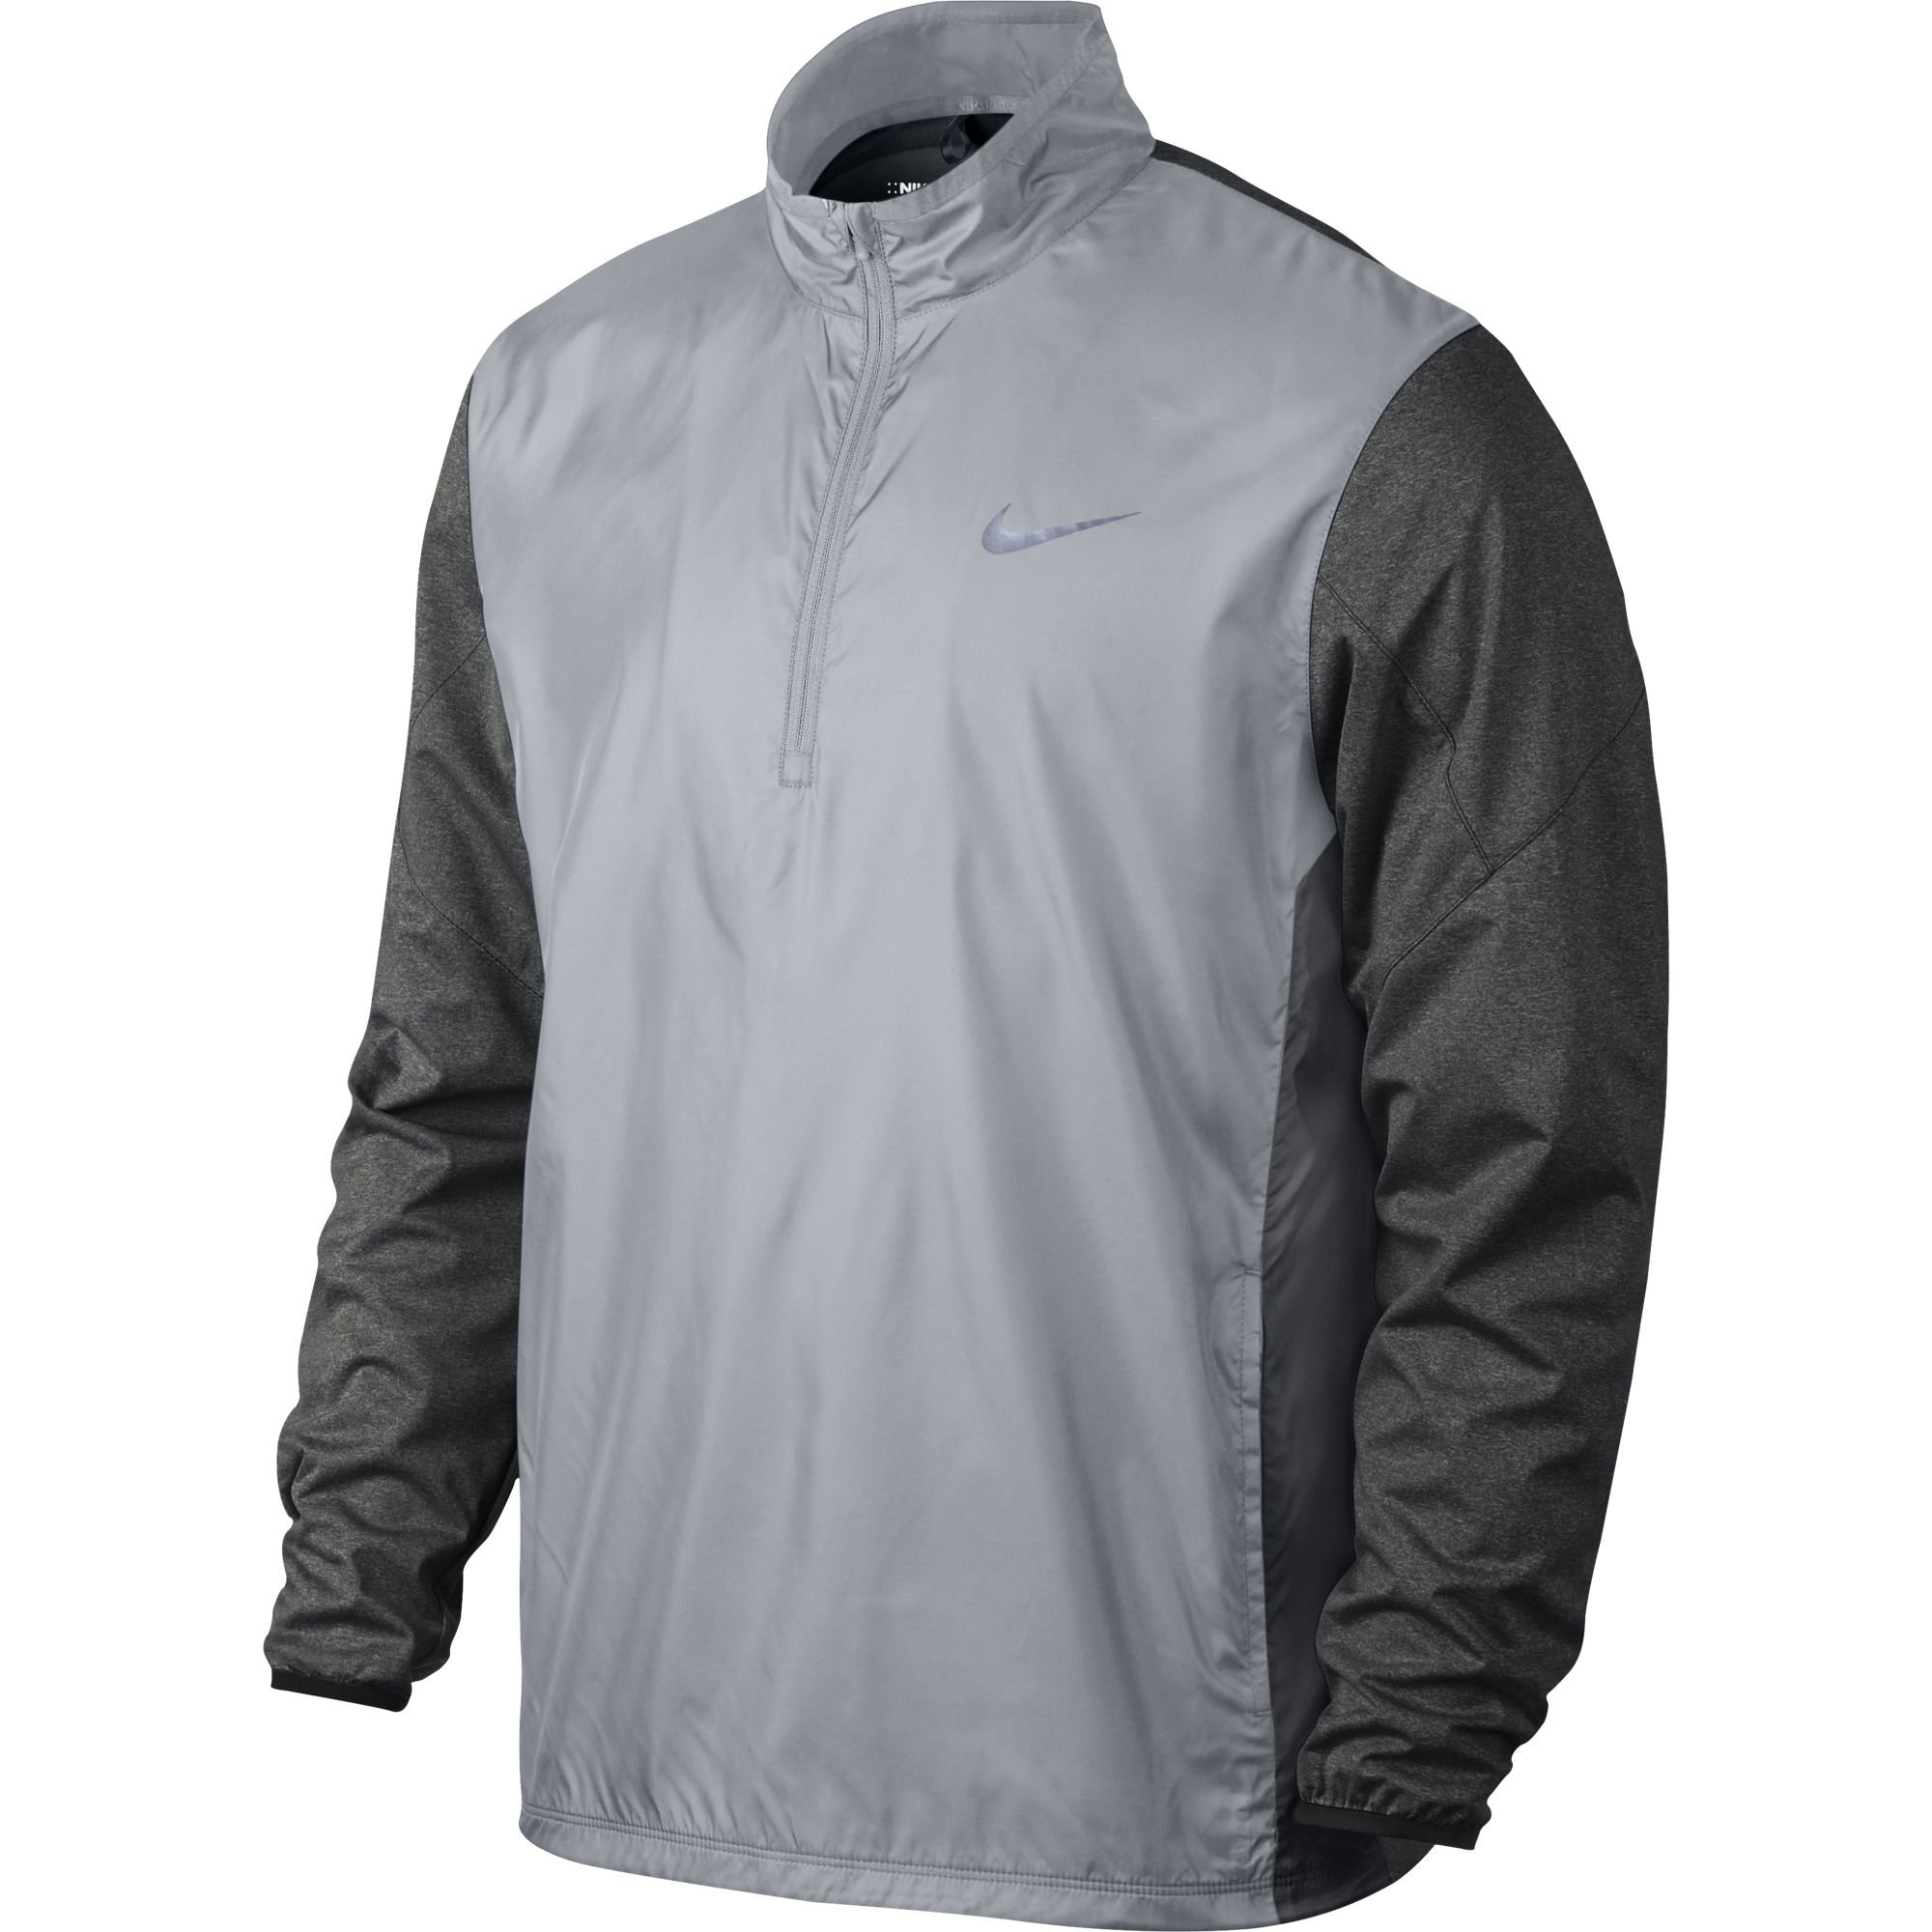 Nike 1/2 Zip Shield Top Golf Pullover 2016 Wolf Grey/Charcoal Heather/Wolf Grey/Reflect Black Small